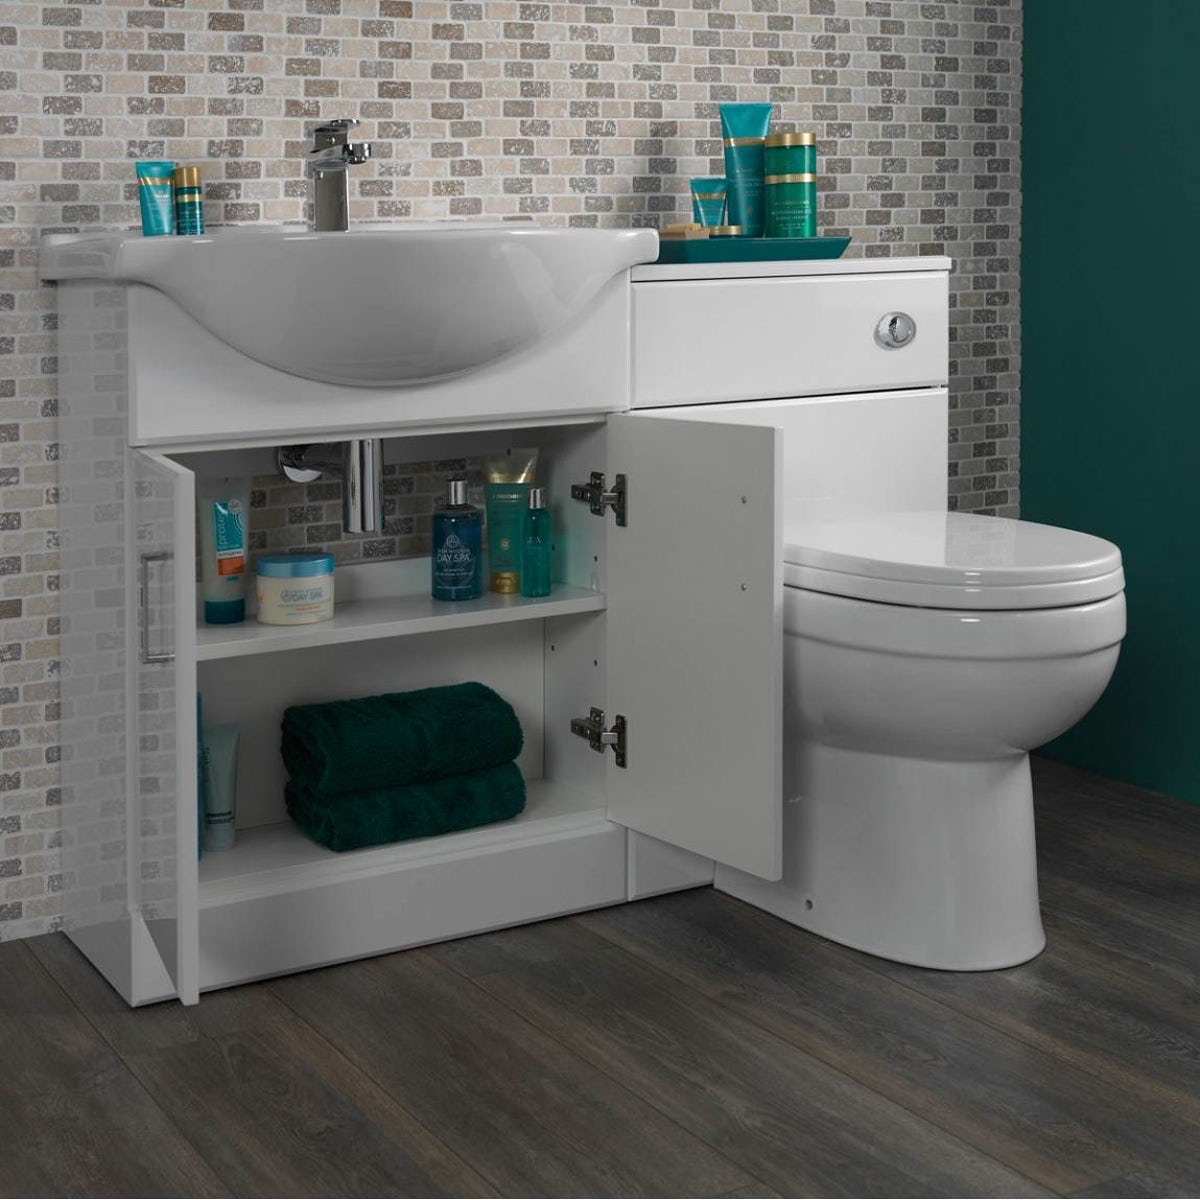 Combination toilet and basin unit